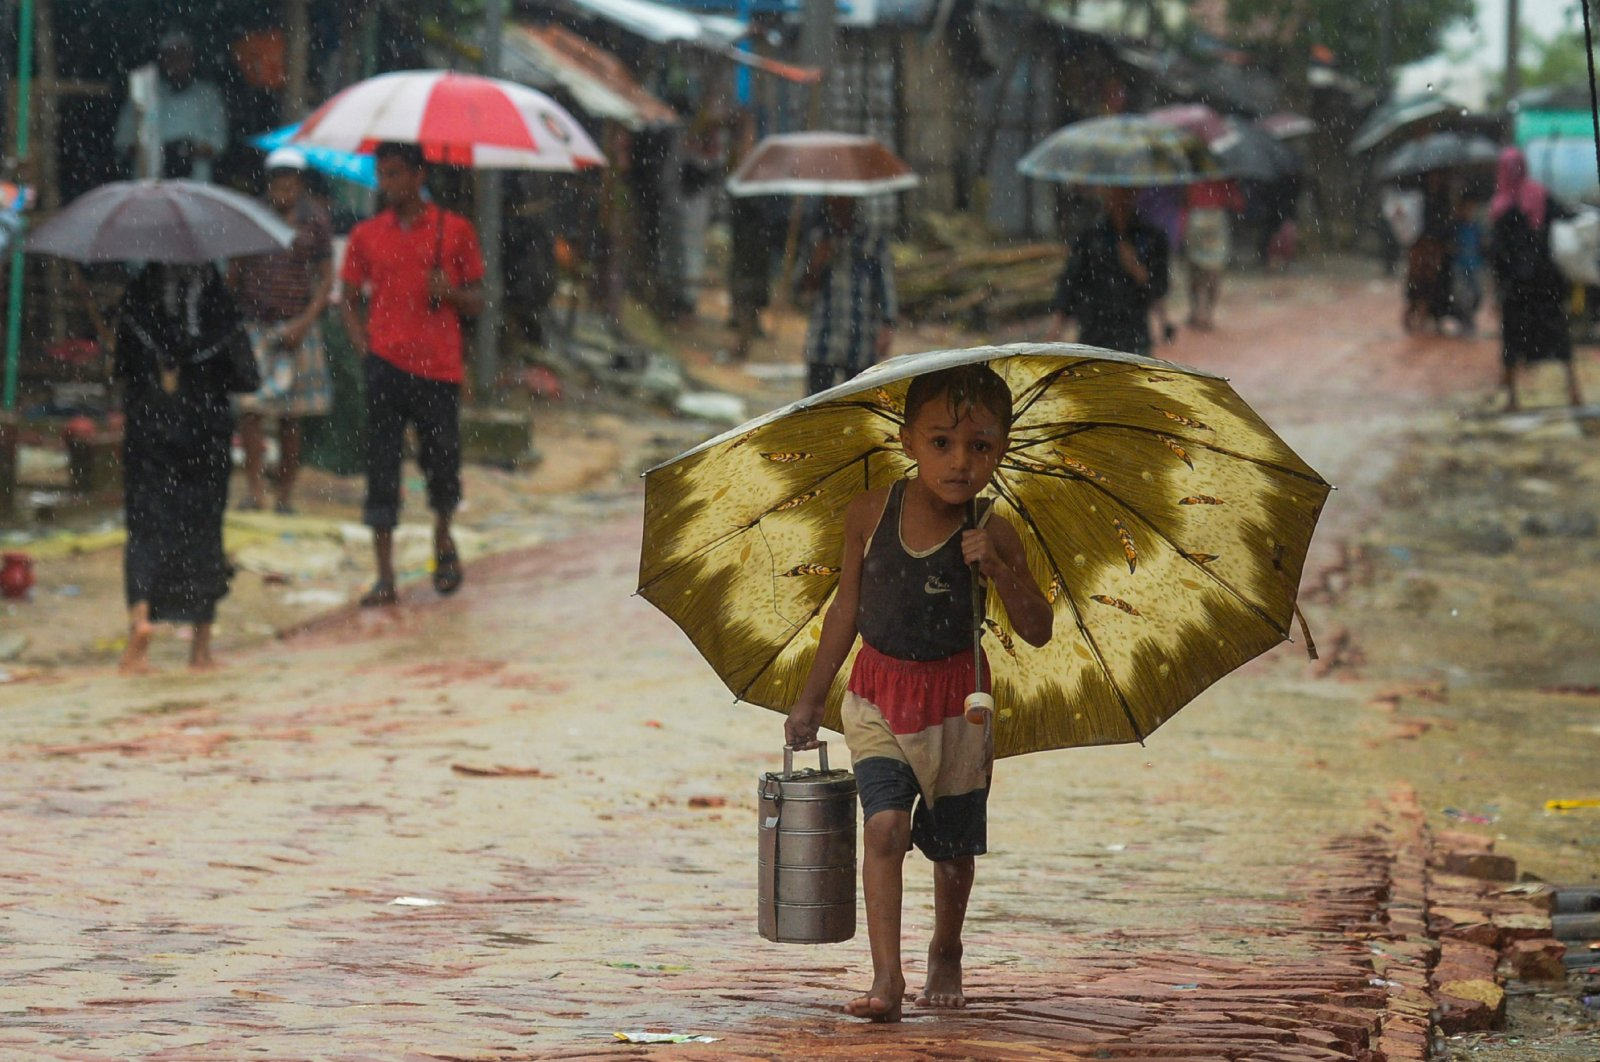 A Rohingya refugee boy shelters under an umbrella as he makes his way during a monsoon rainfall at Kutupalong refugee camp, Ukhia, Sept. 12, 2019. (AFP Photo)